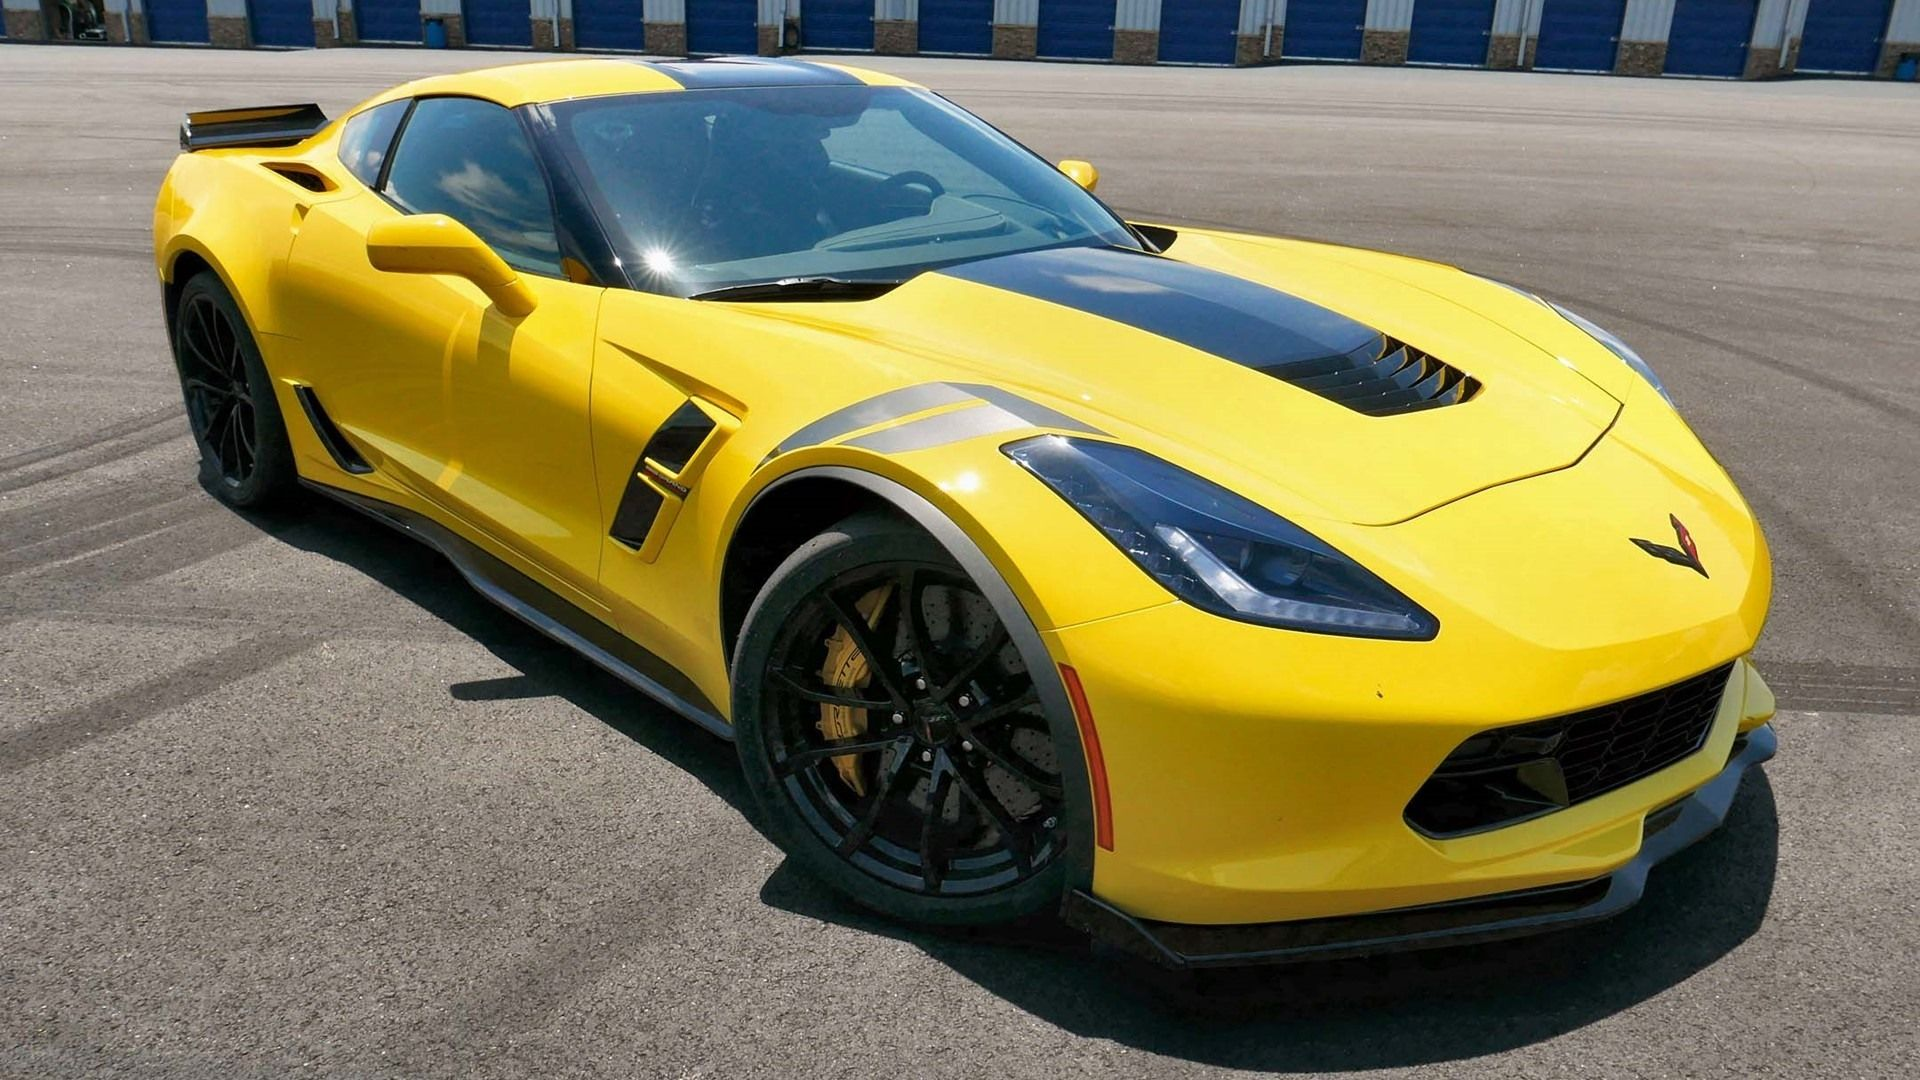 The 2017 Chevrolet Corvette Grand Sport Zr1 Z06 Review And Specs